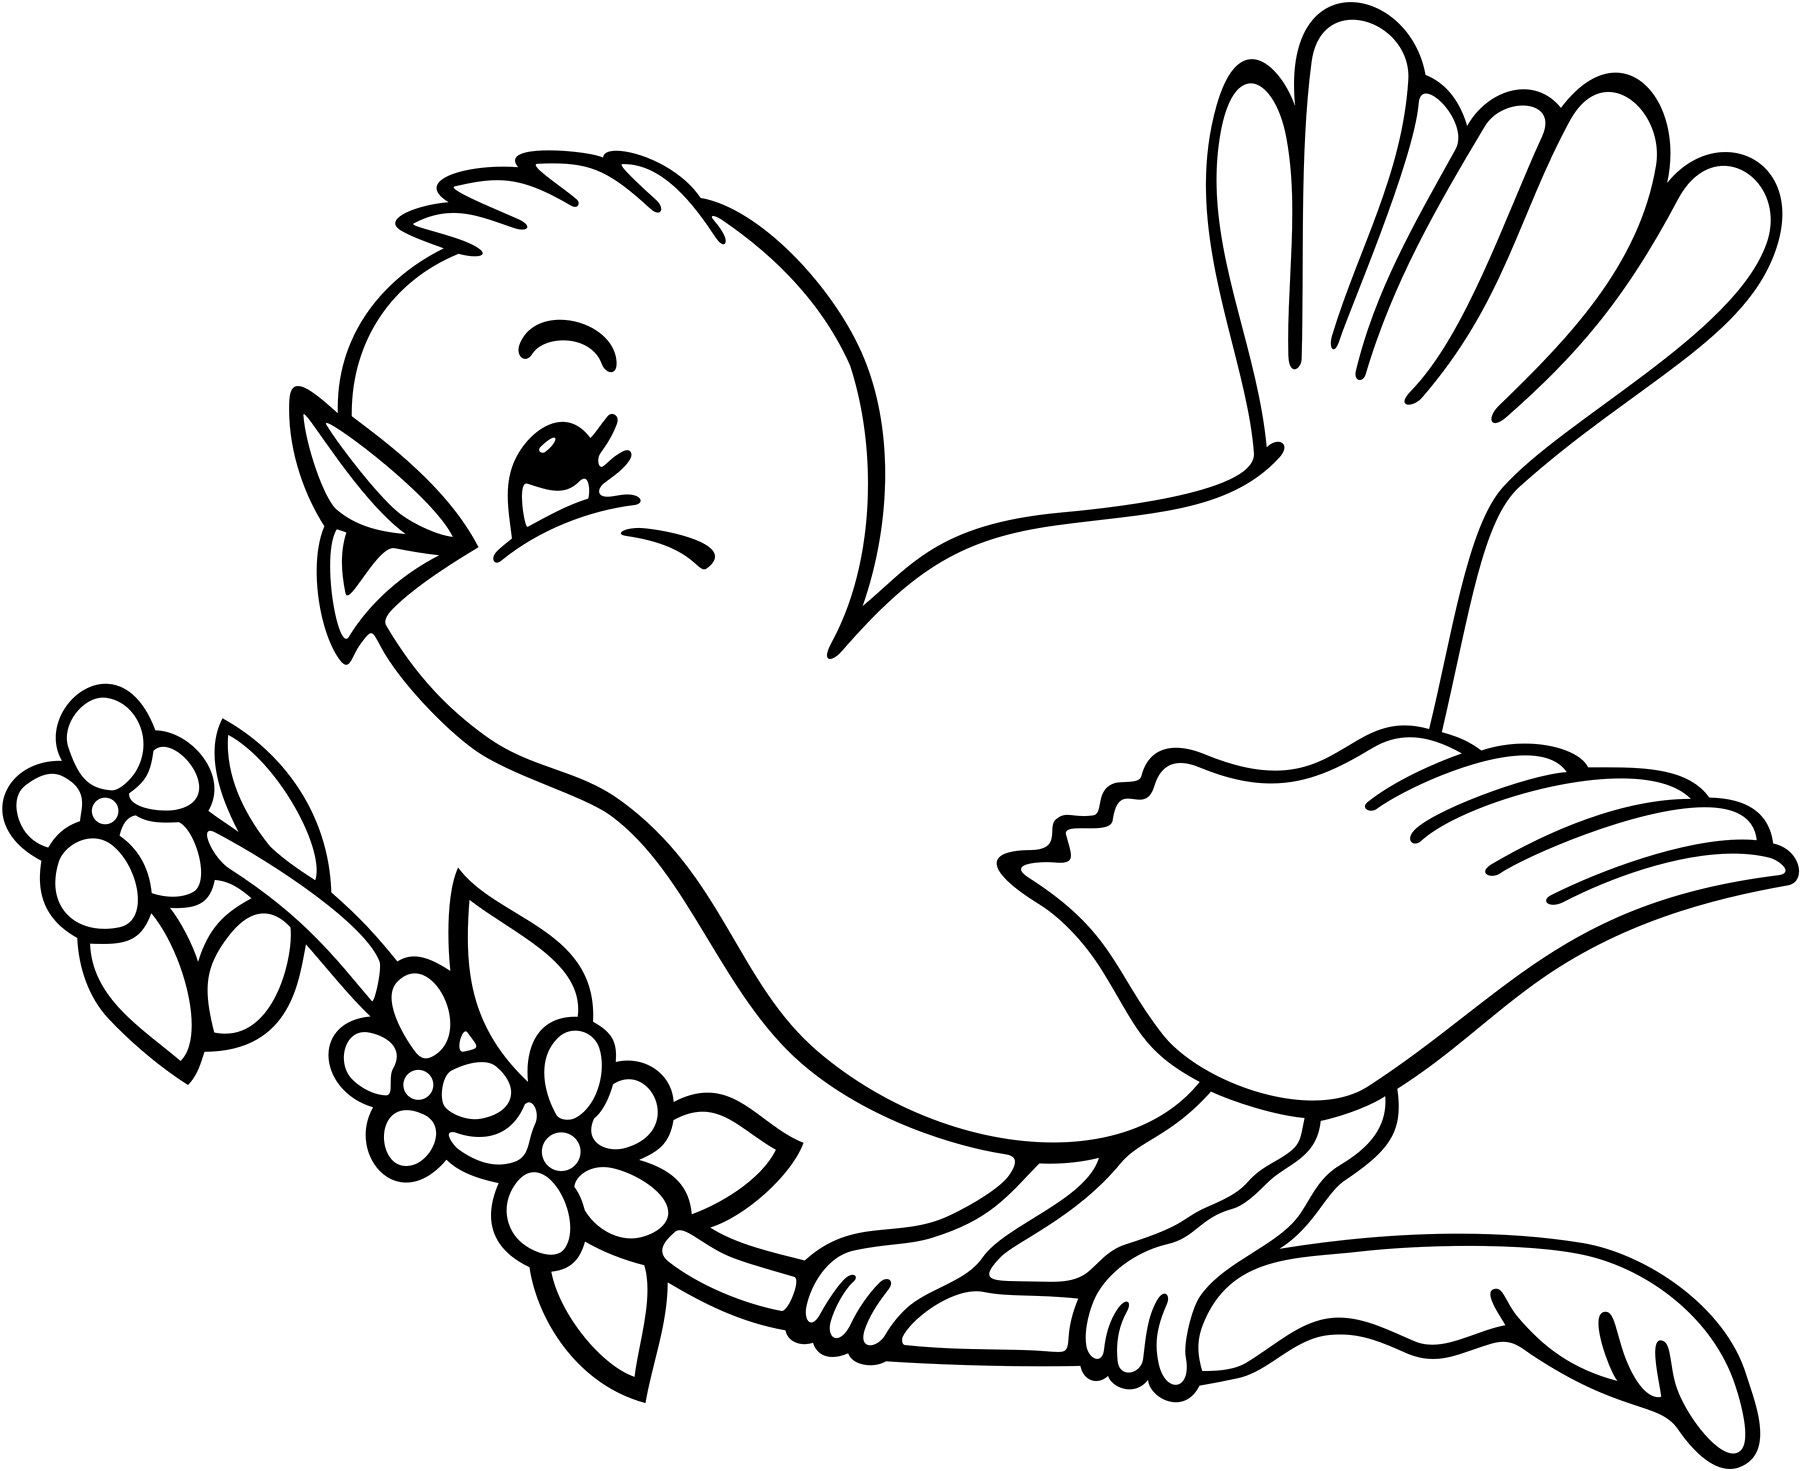 online bird coloring pages - photo#8